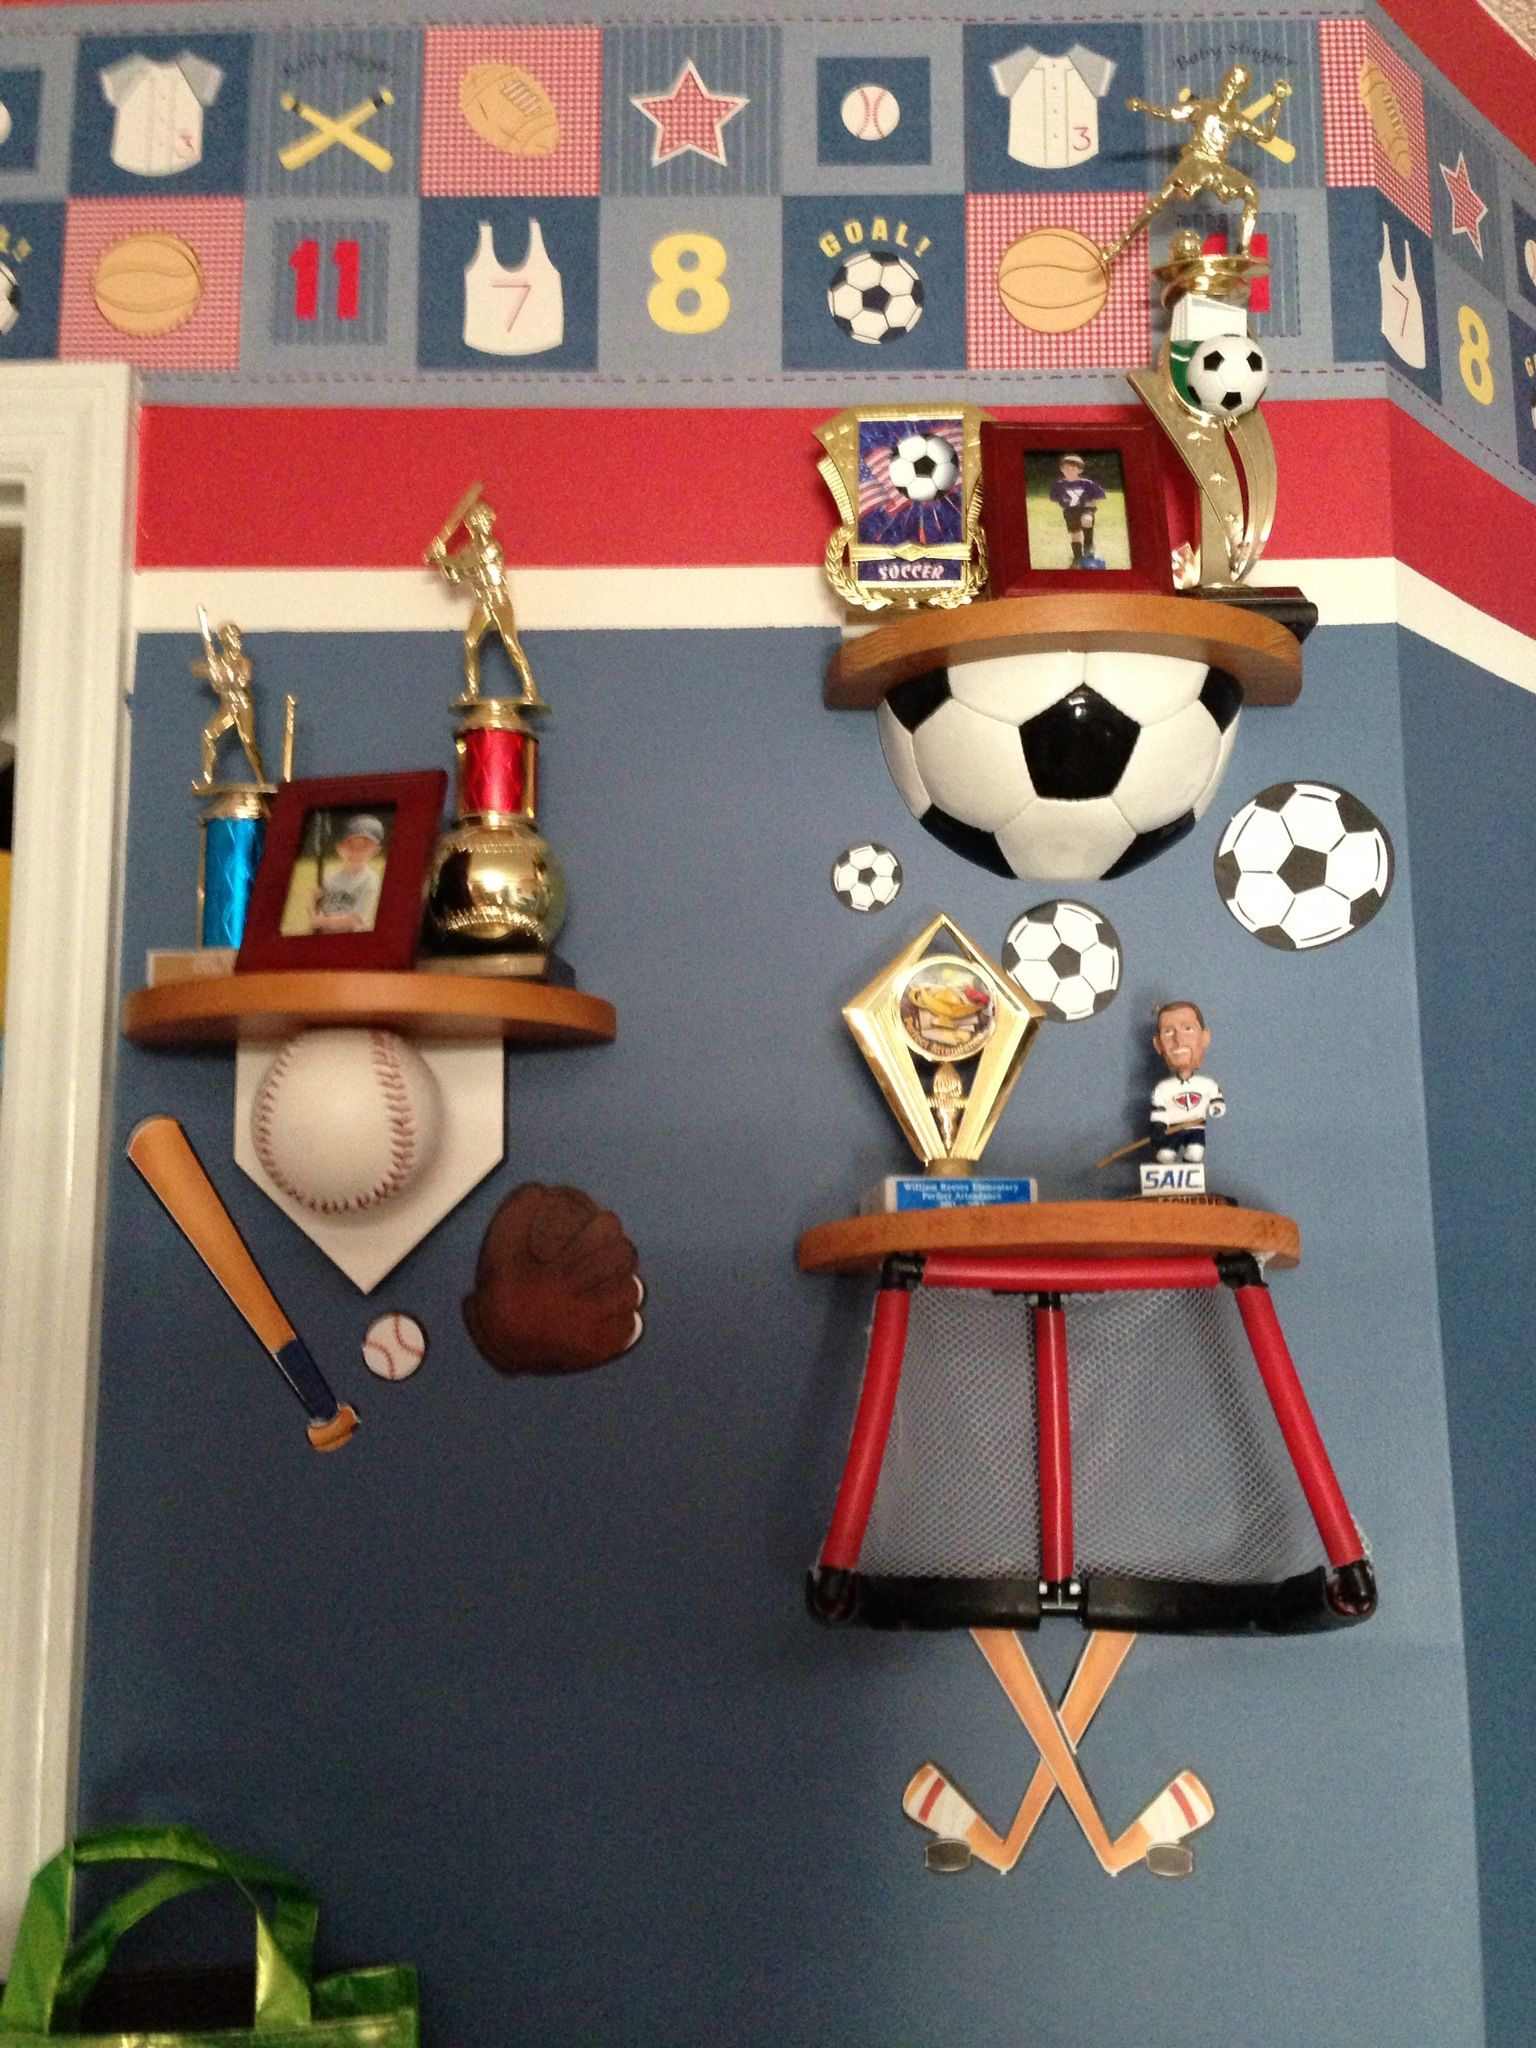 We Found The Soccer And Baseball Shelves Online But No Hockey It